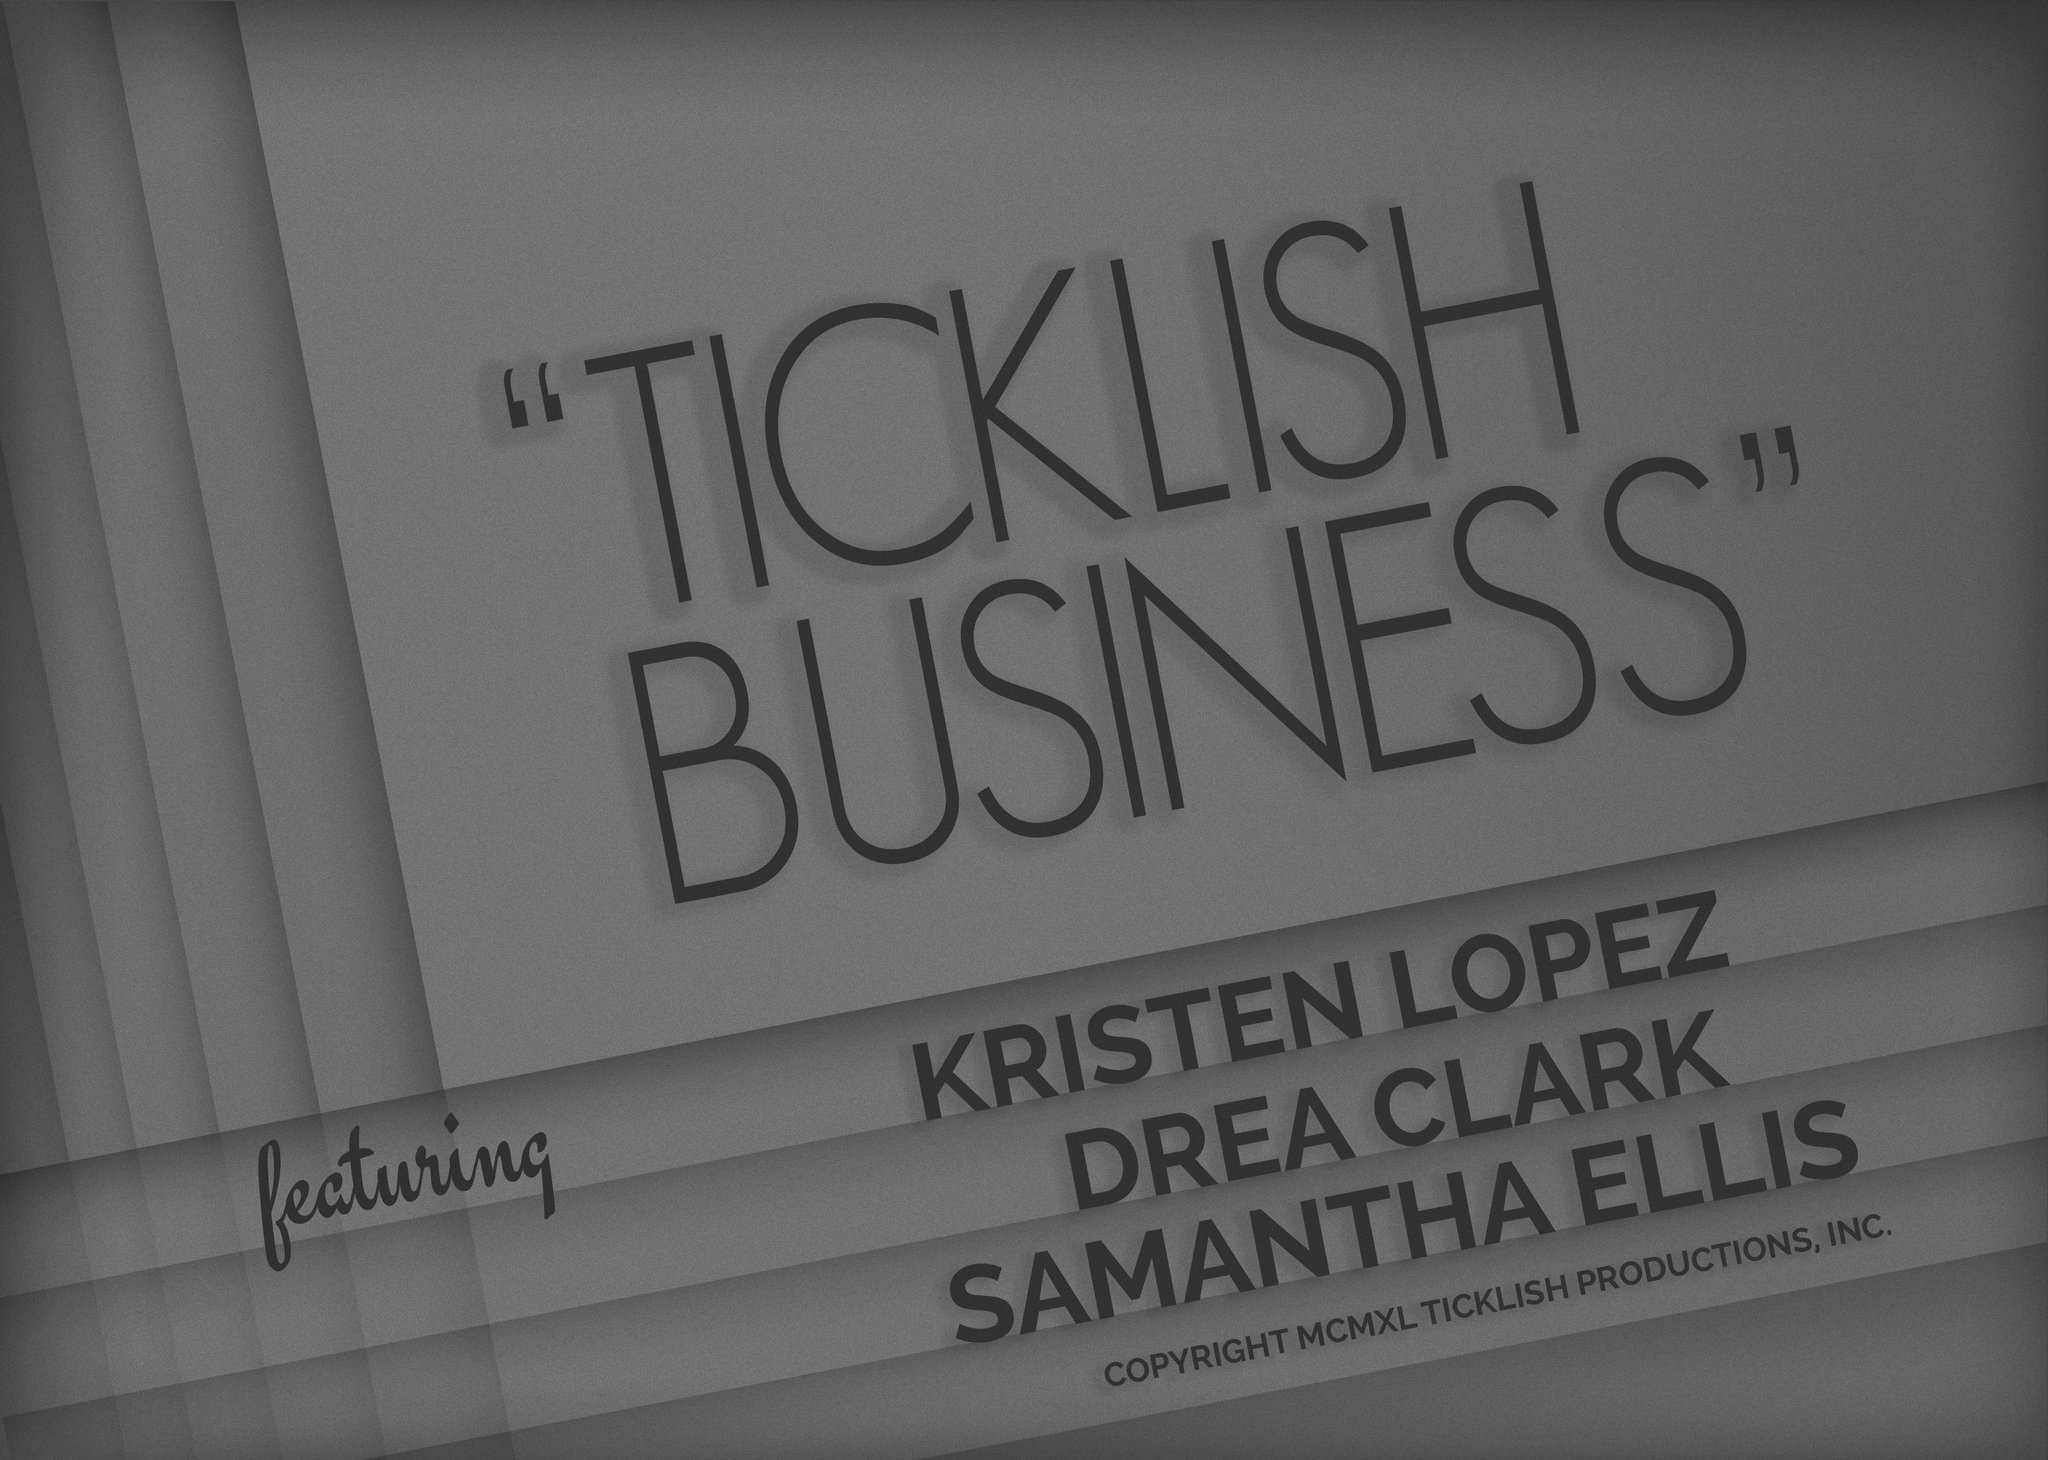 Ticklish Business